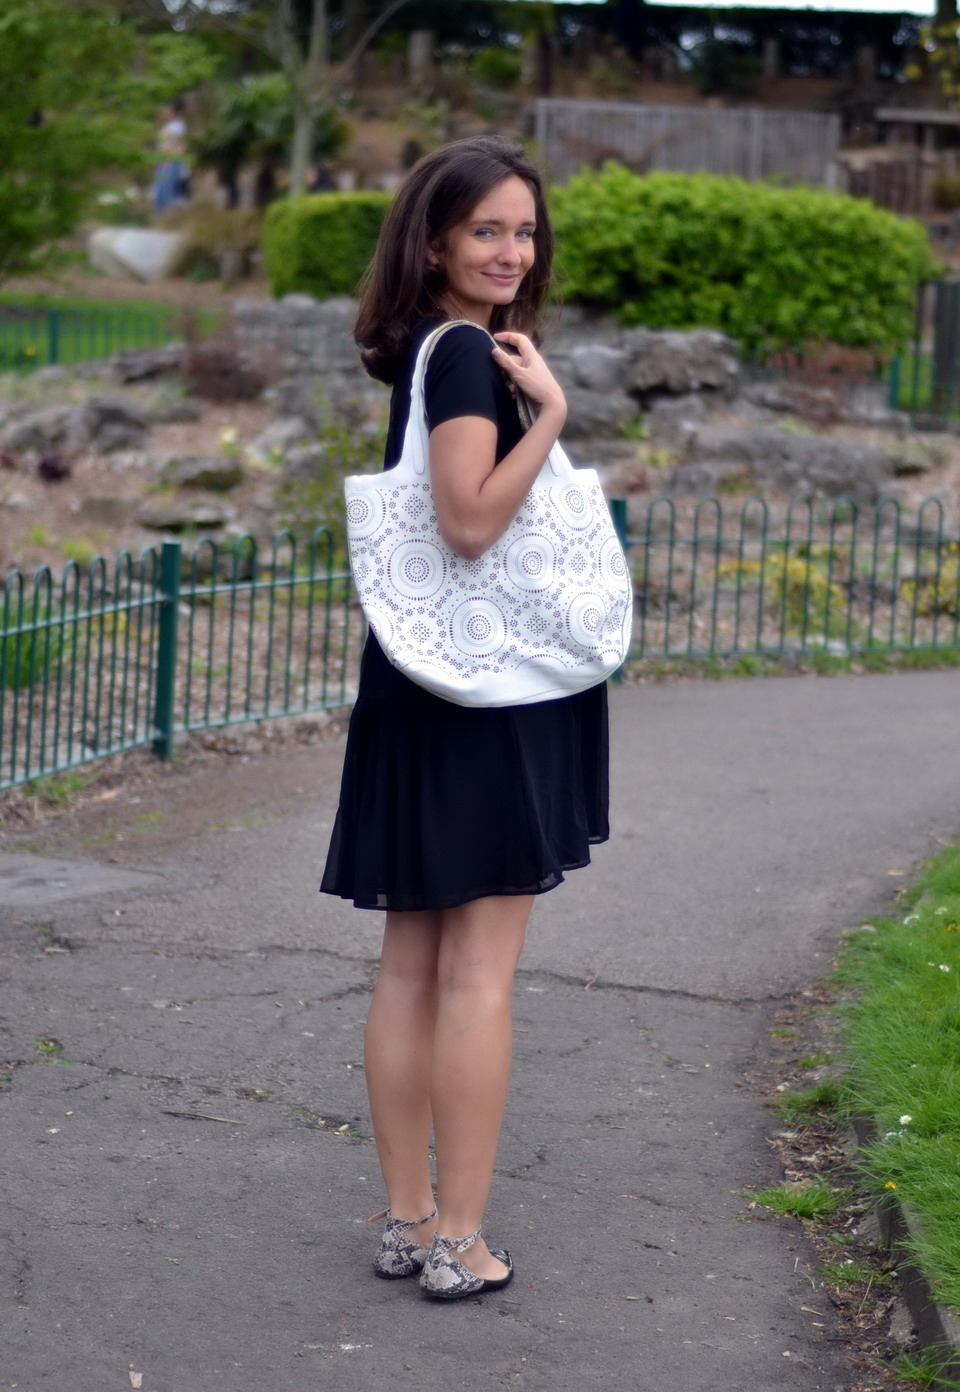 White lasercut bag from Alchimia. The perforated leather looks like lace, love the effect!